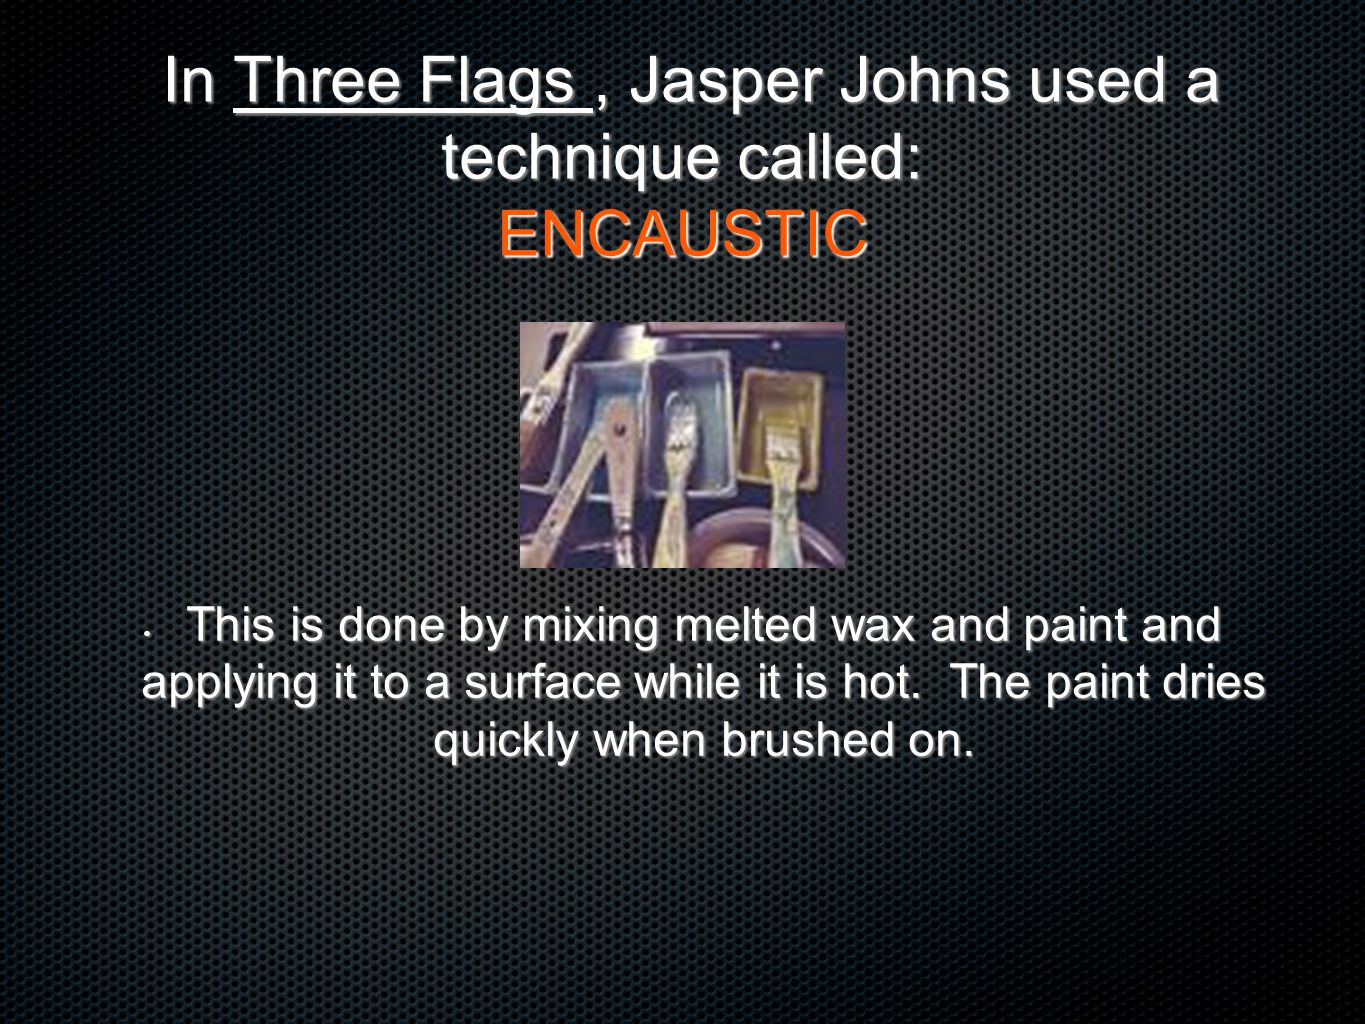 In Three Flags , Jasper Johns used a technique called: ENCAUSTIC